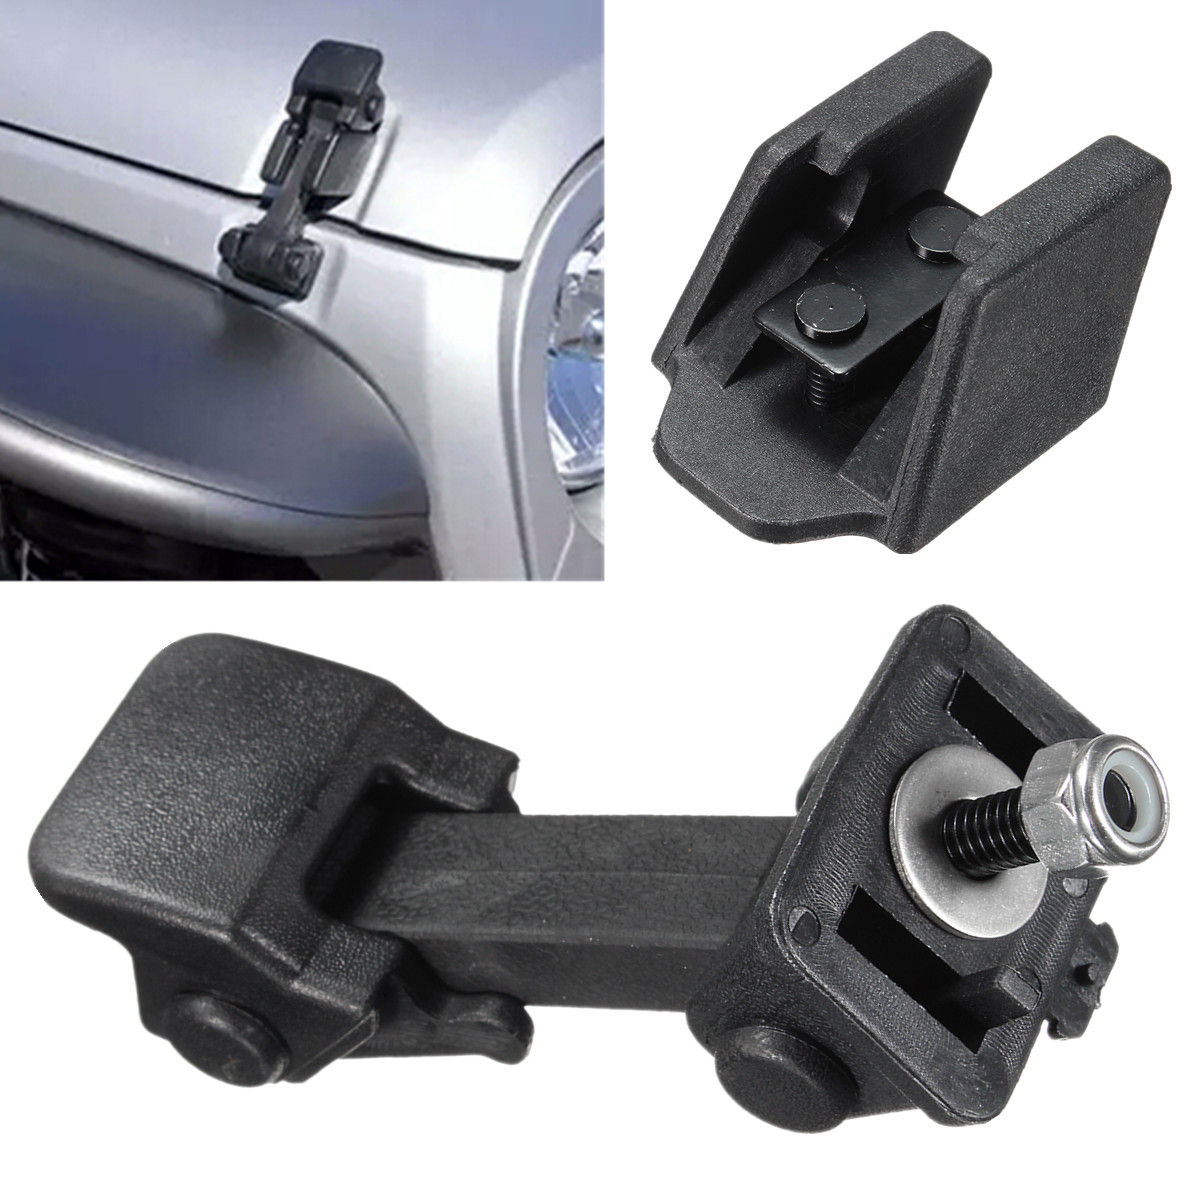 1 Pair Replacement Hood Catch & Bracket Latch Buckle For Jeep-wrangler 2007-2016 Black Abs Auto Engines & Components